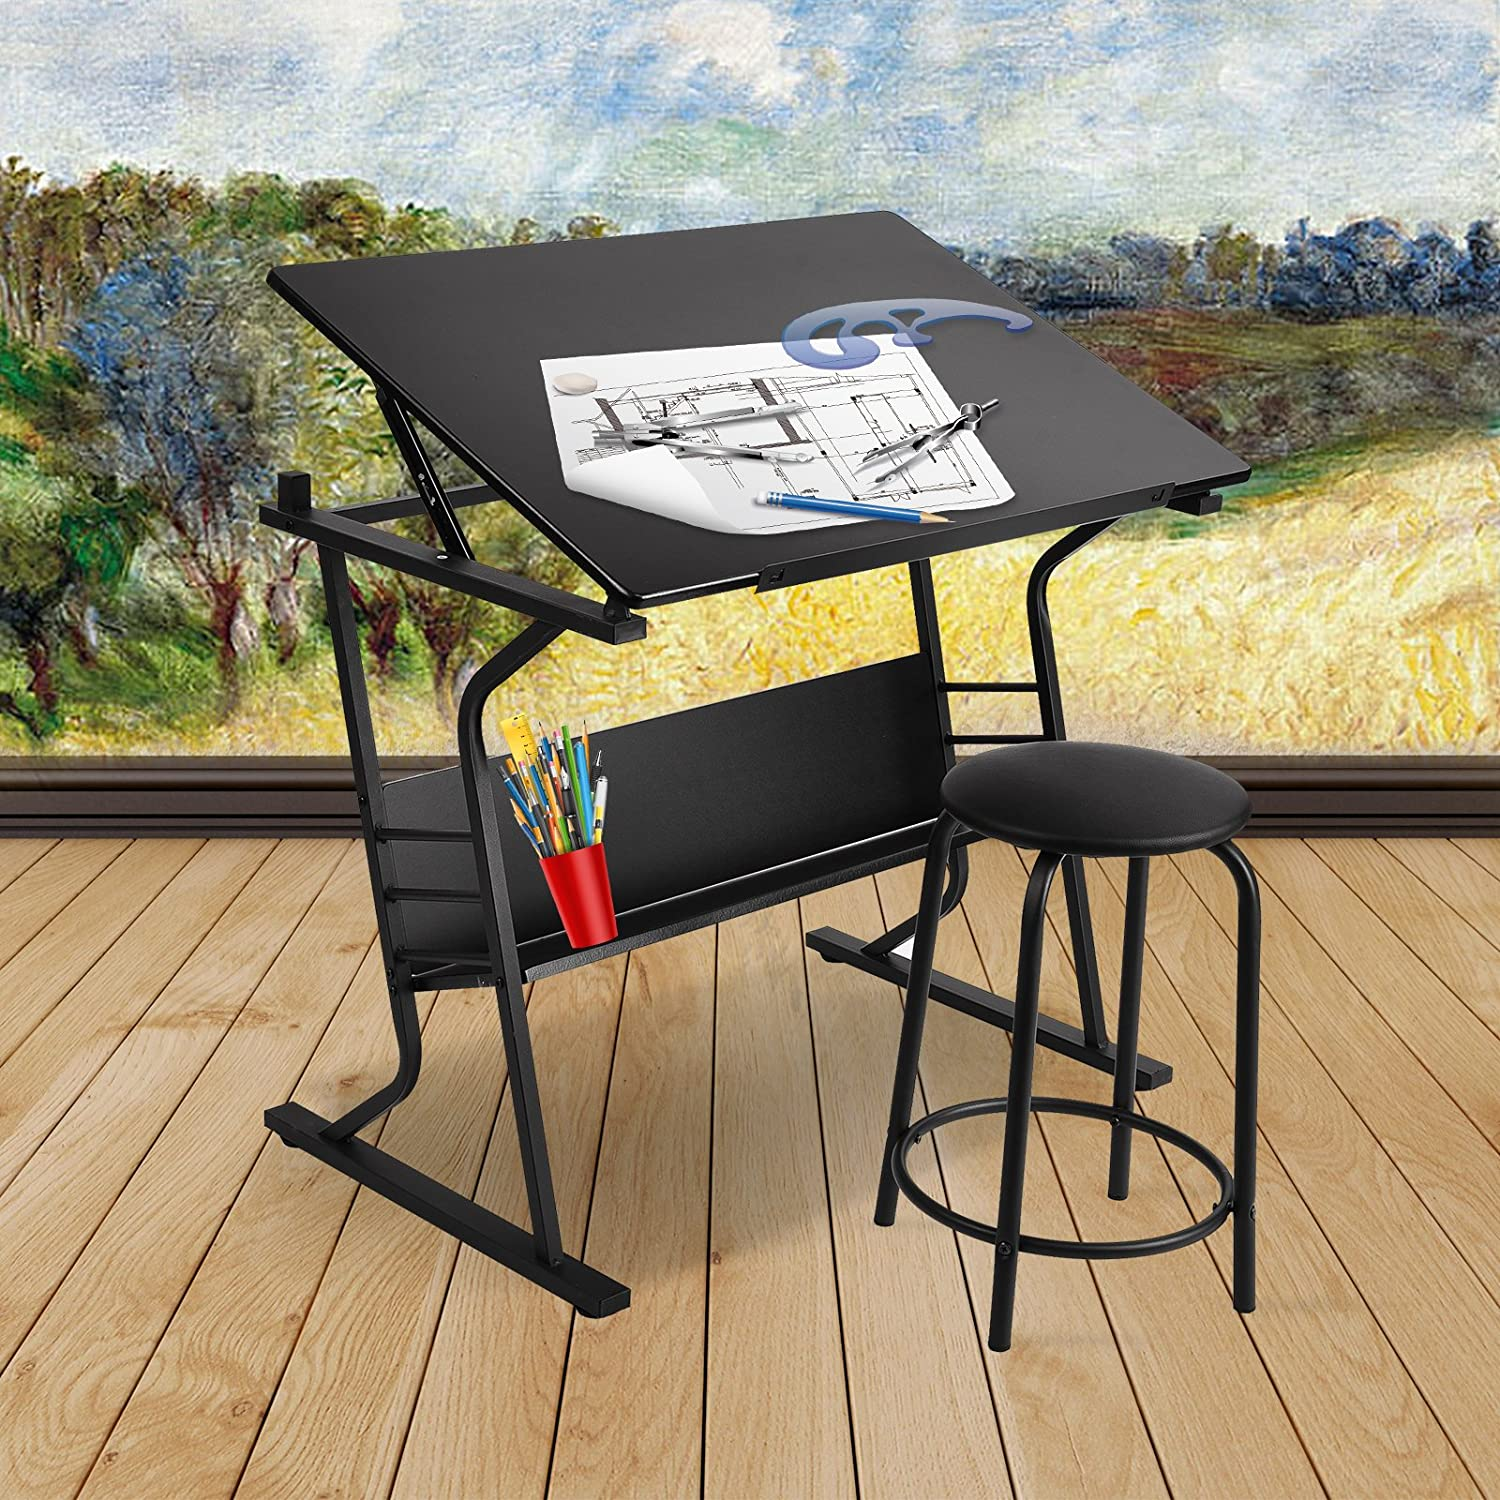 Mecor Adjustable Drawing Desk Drafting Table Art Craft Station with Stool,Black